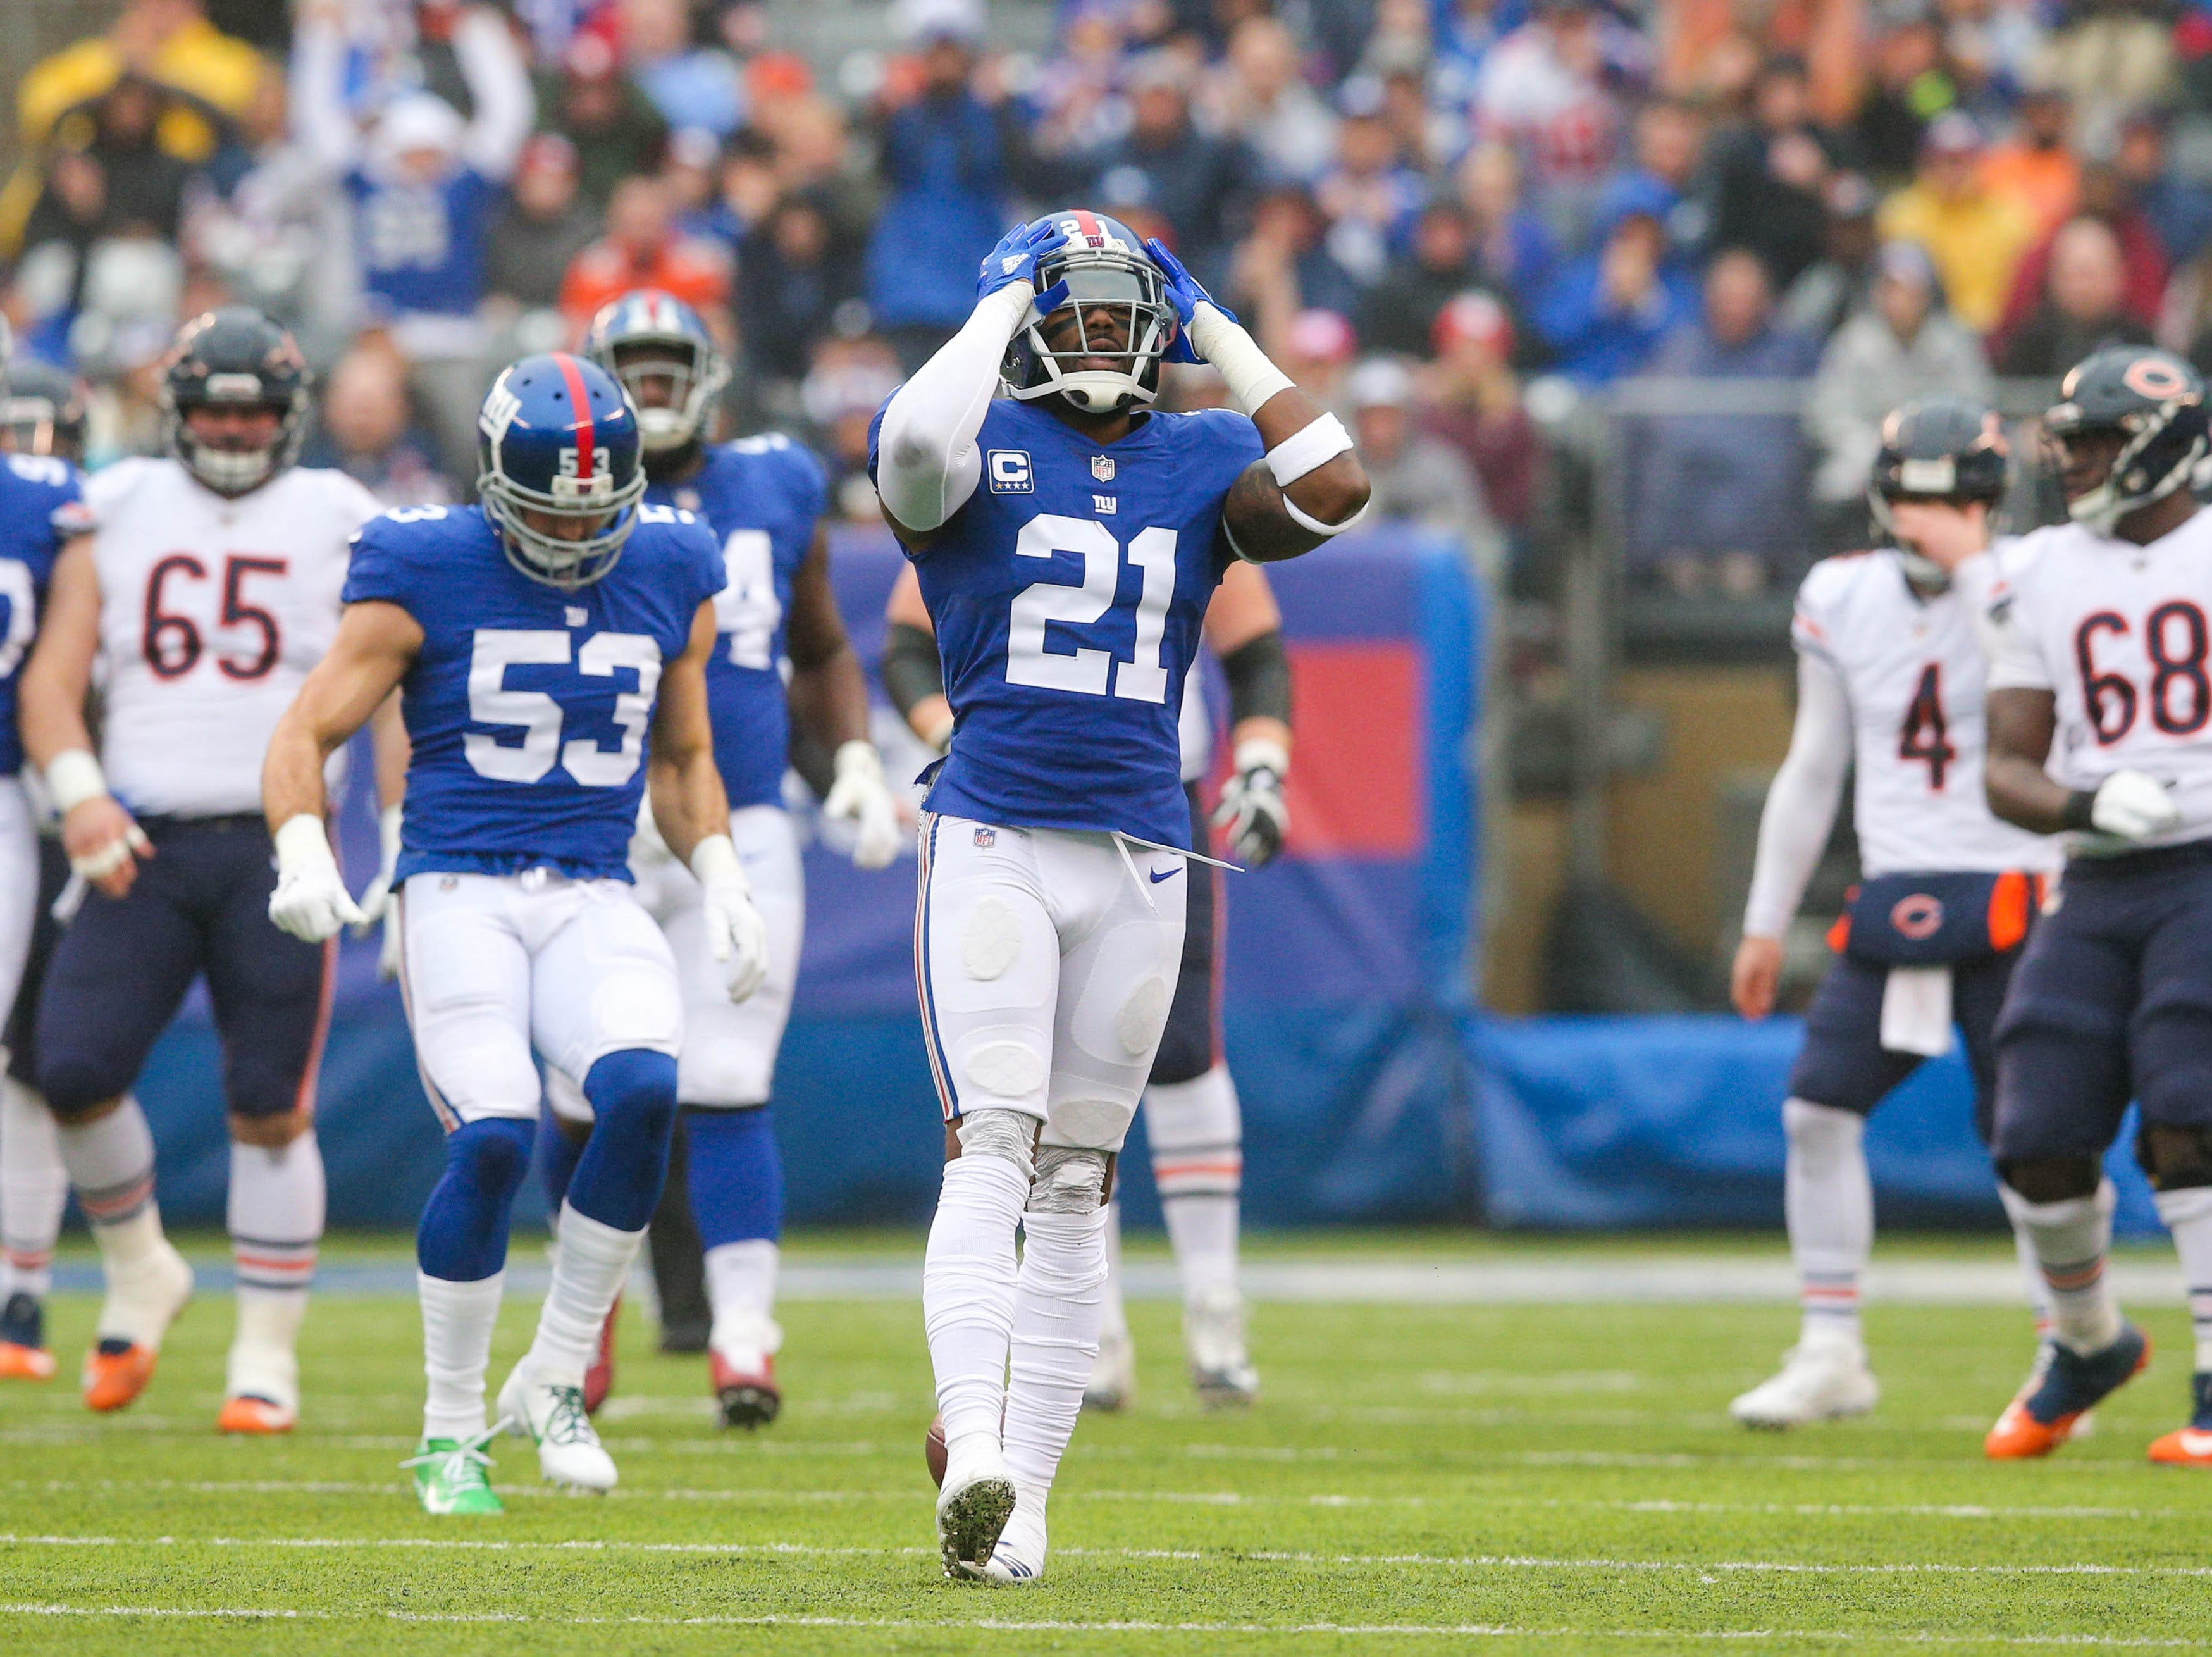 Landon Collins, S, New York Giants (shoulder injury, out for season)